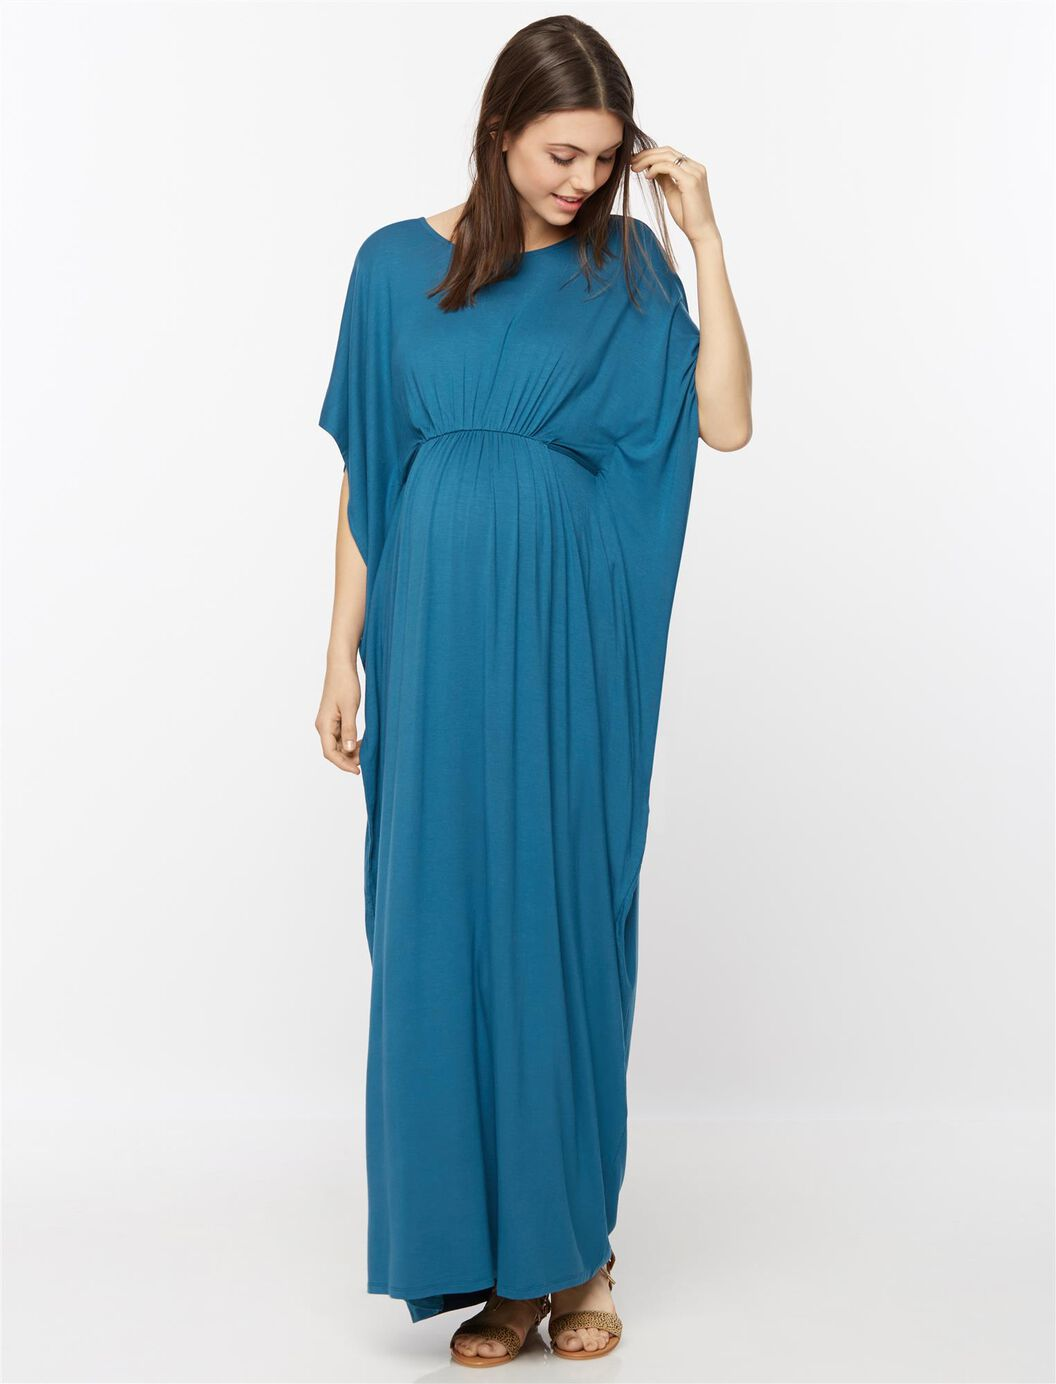 Batwing maternity maxi dress a pea in the pod maternity batwing maternity maxi dress teal ombrellifo Gallery